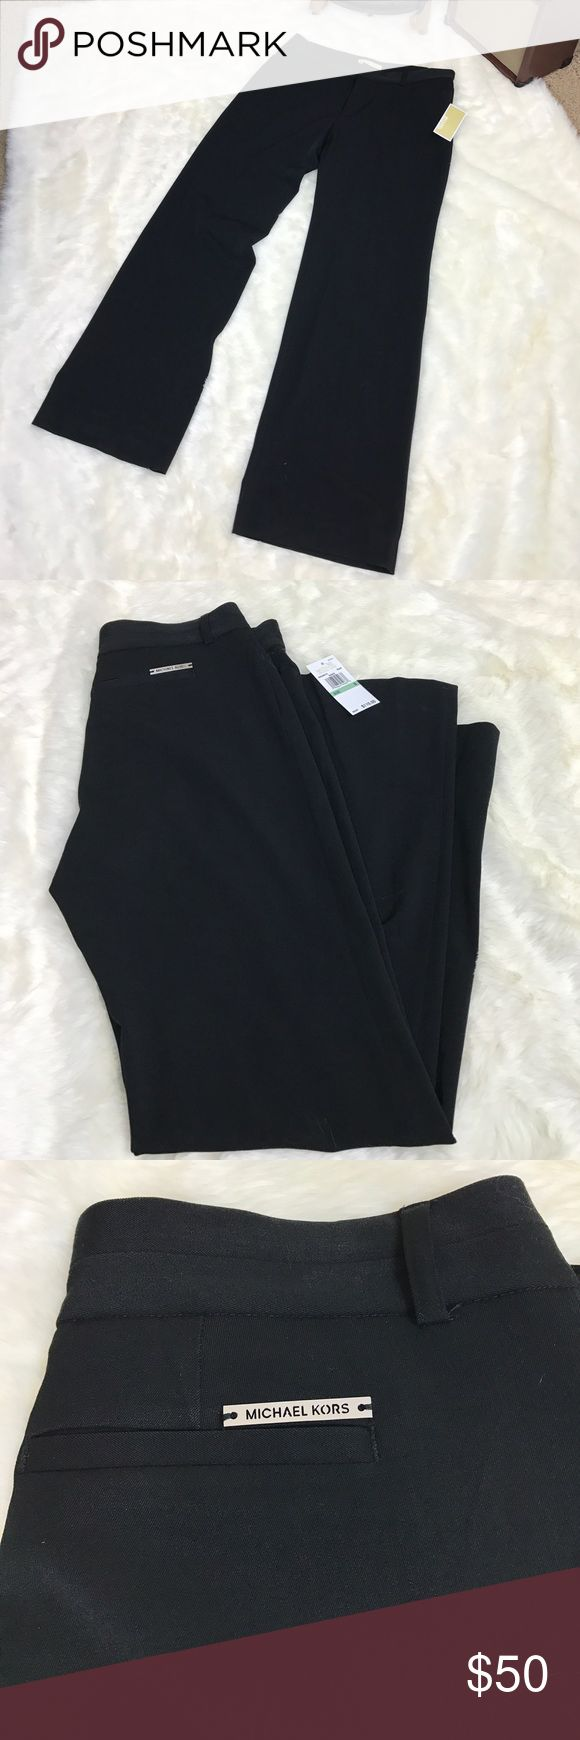 Michael Kors Dress Pants Please feel free to ask any questions, bundle, or make an offer. Michael Kors black dress pants. Women's size 8. New with tags. MICHAEL Michael Kors Pants